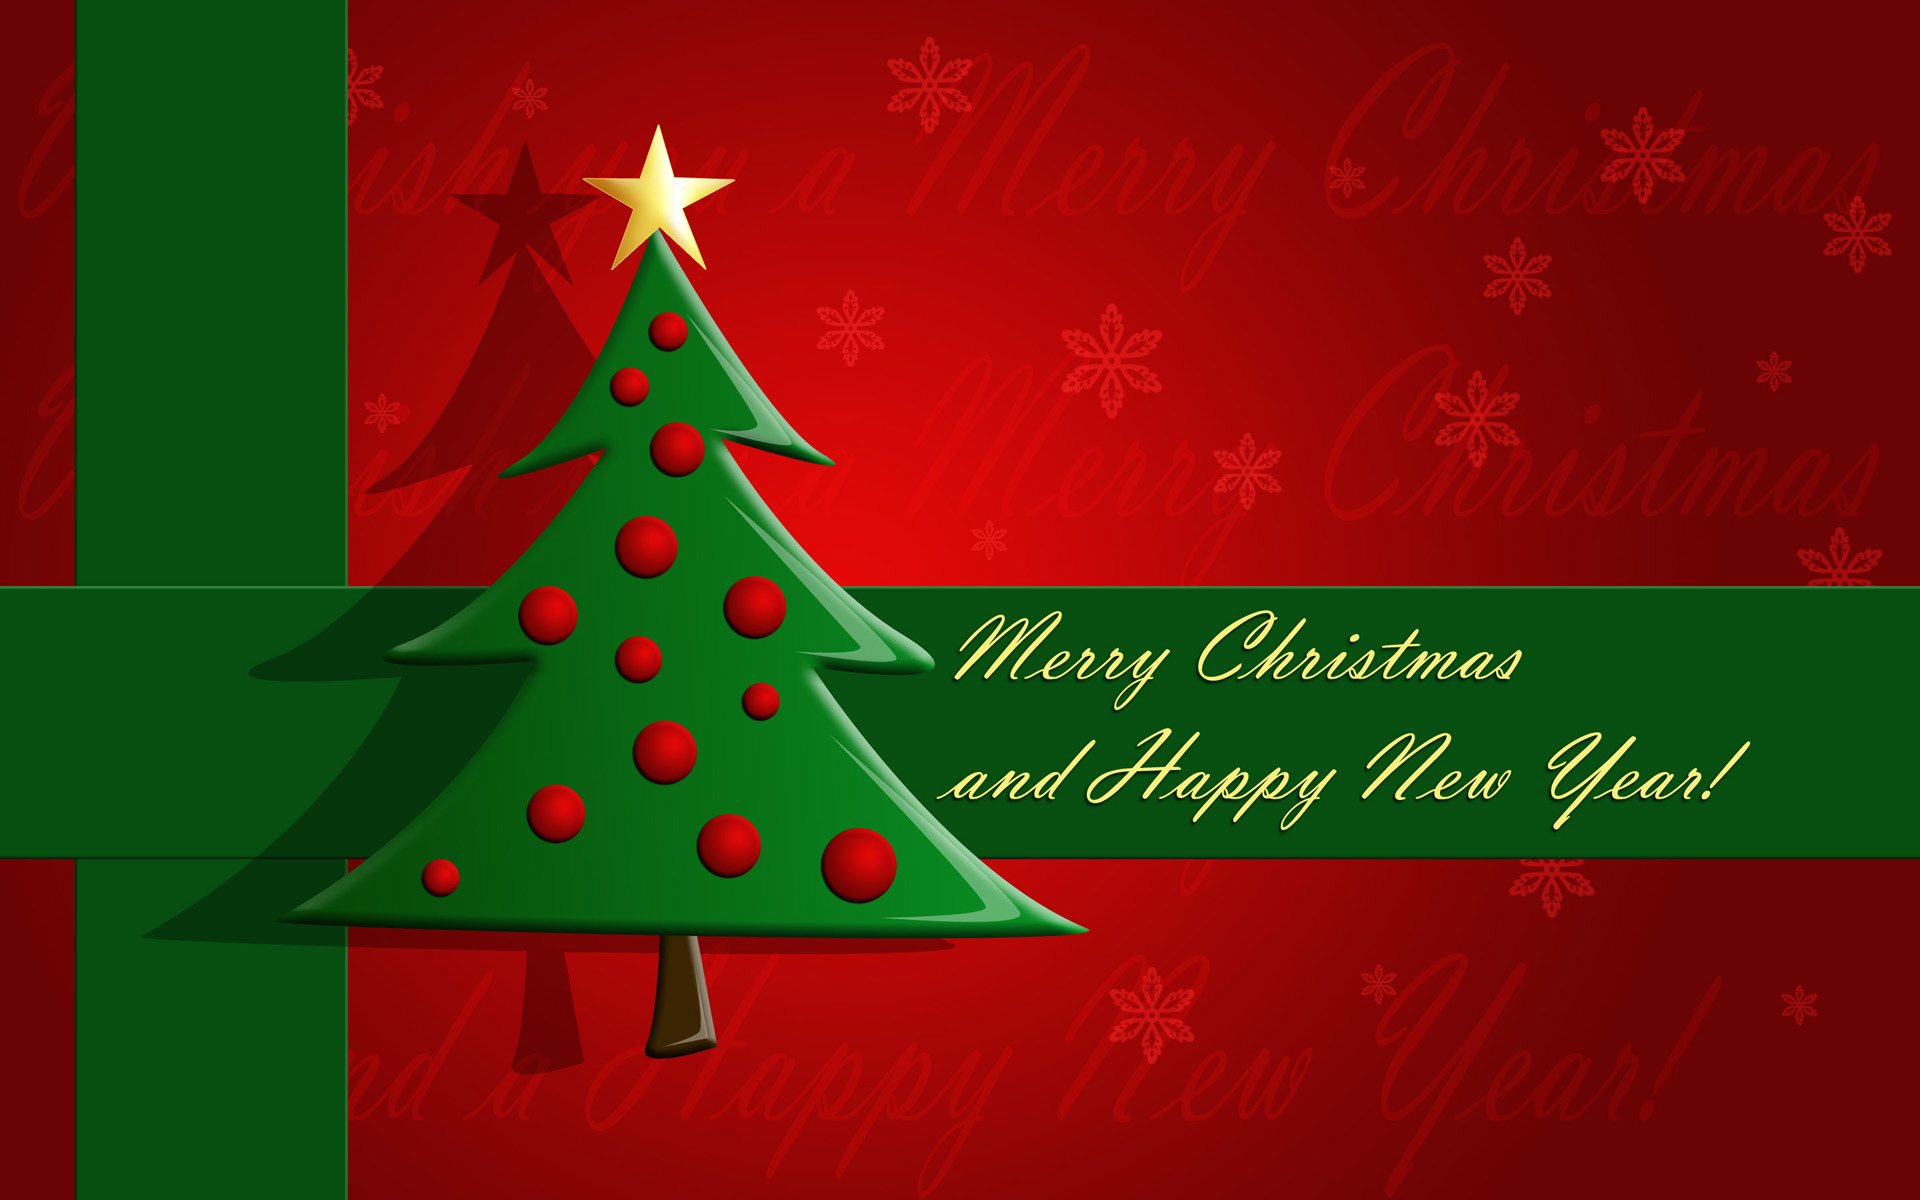 Merry Christmas And Happy New Year Wallpaper